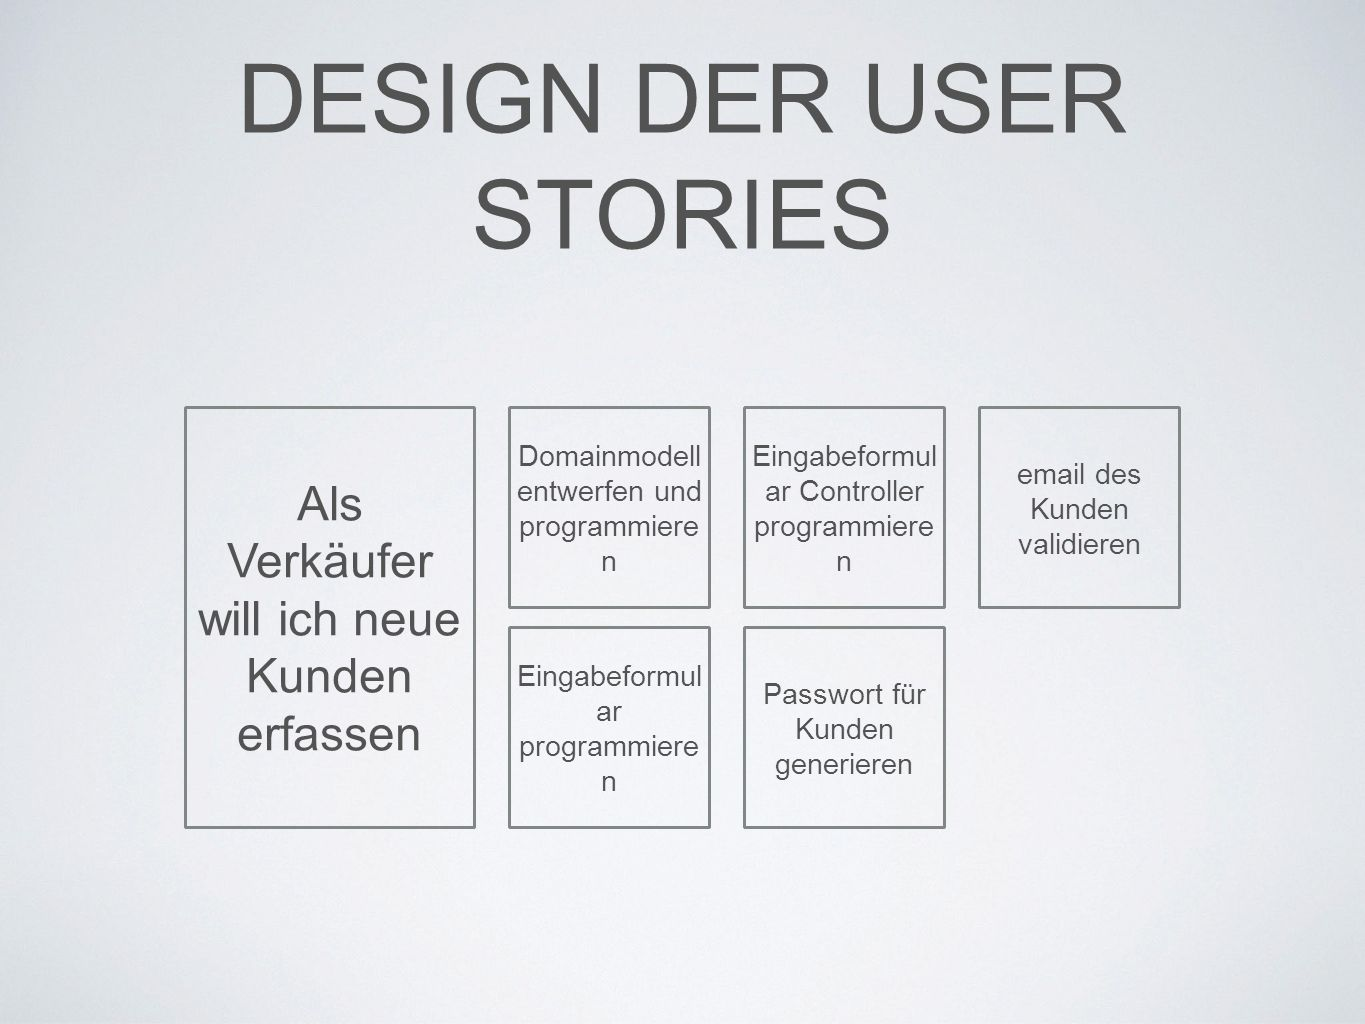 DESIGN DER USER STORIES